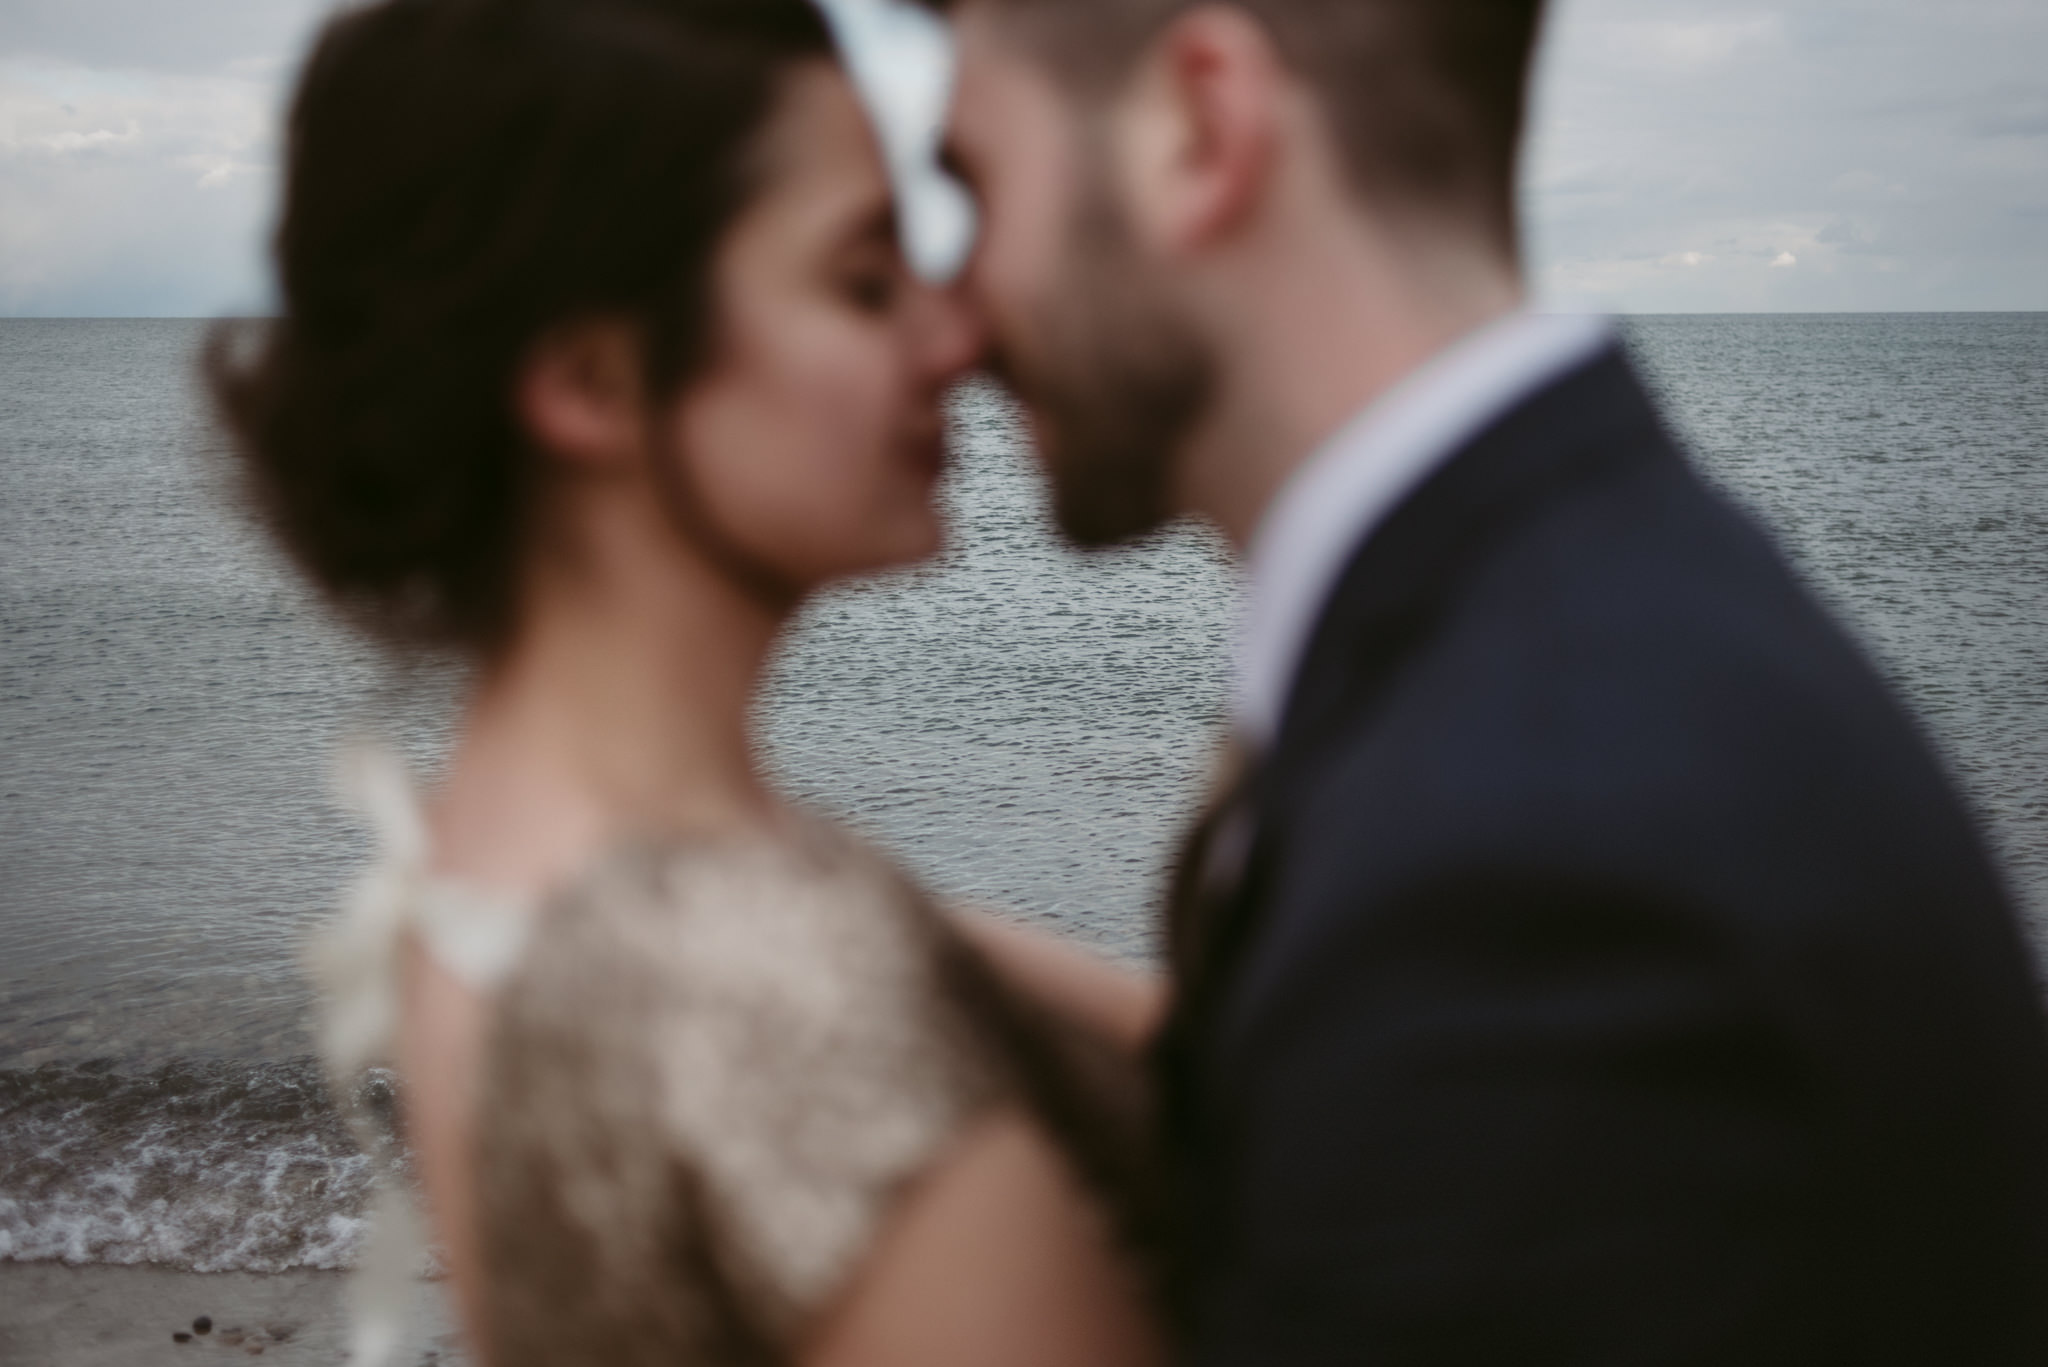 Water in focus with couple kissing